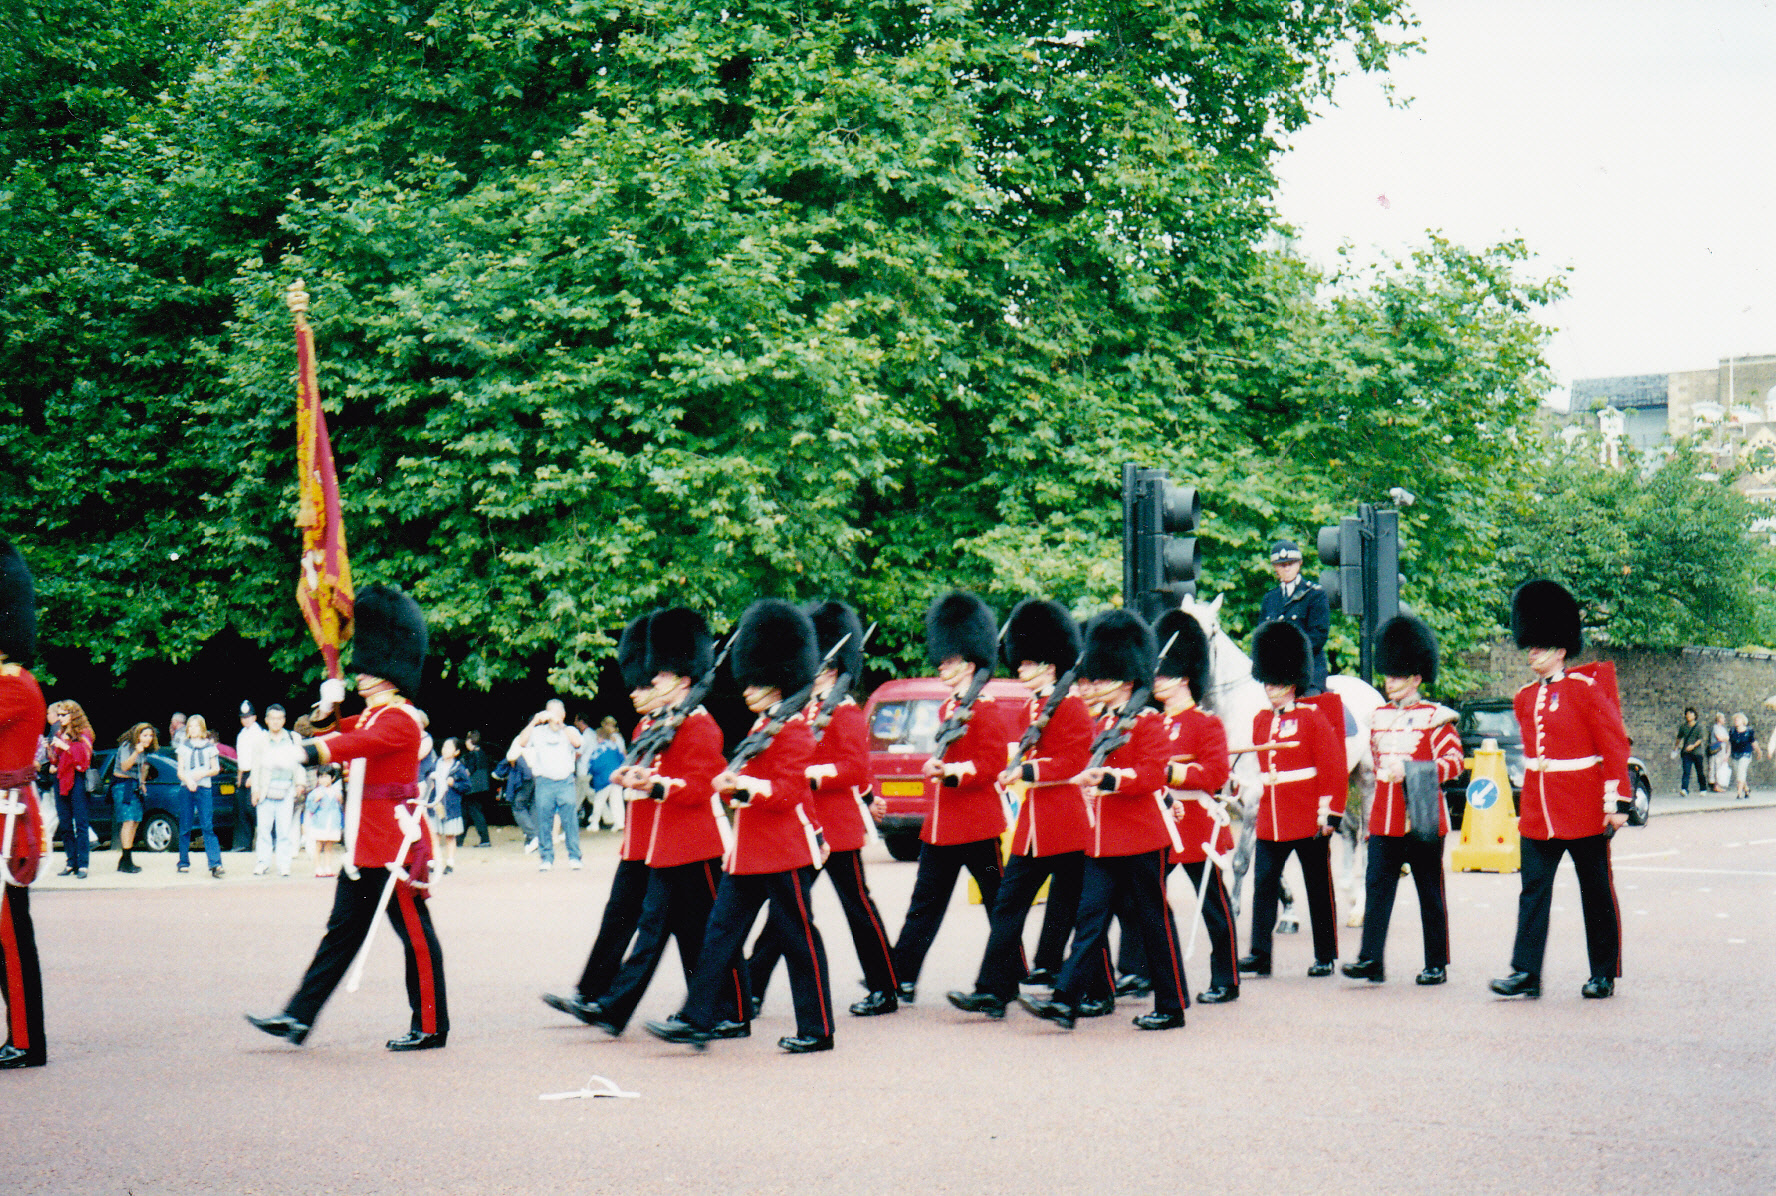 Queen's guard on parade outrside Buckingham Palace